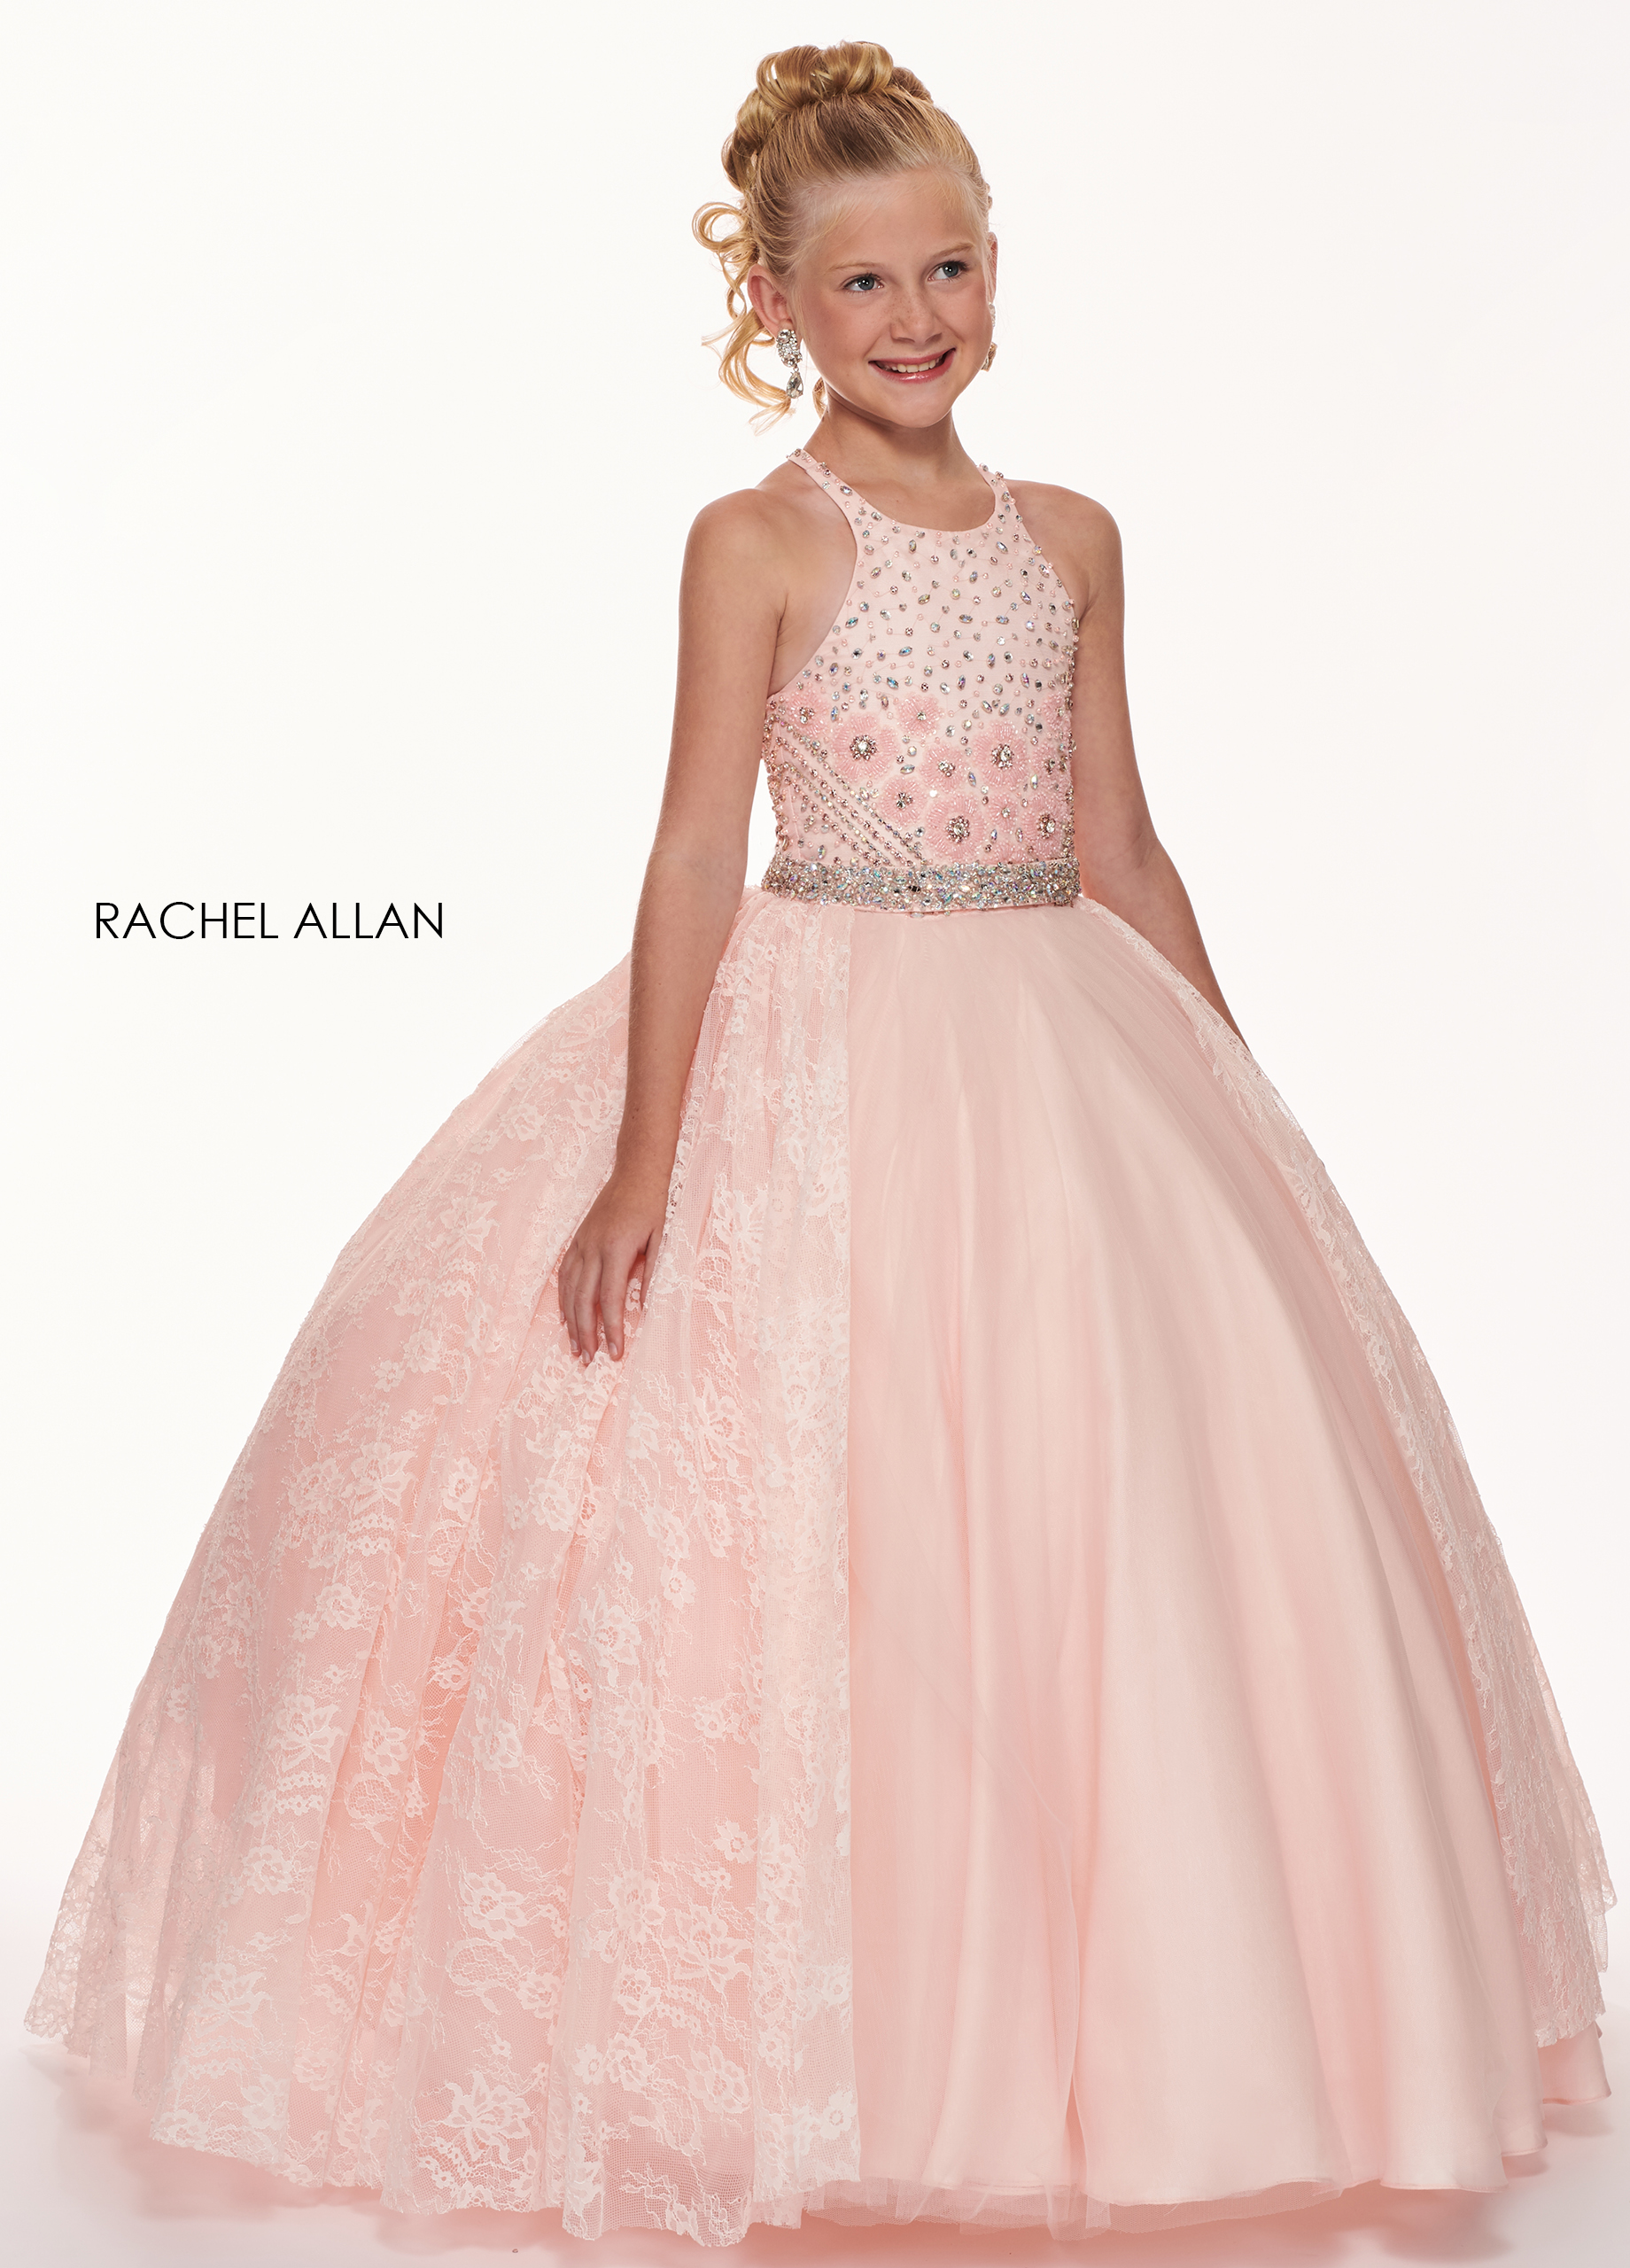 Halter Ball Gowns Little Girl Pageant Dresses in Pink Color